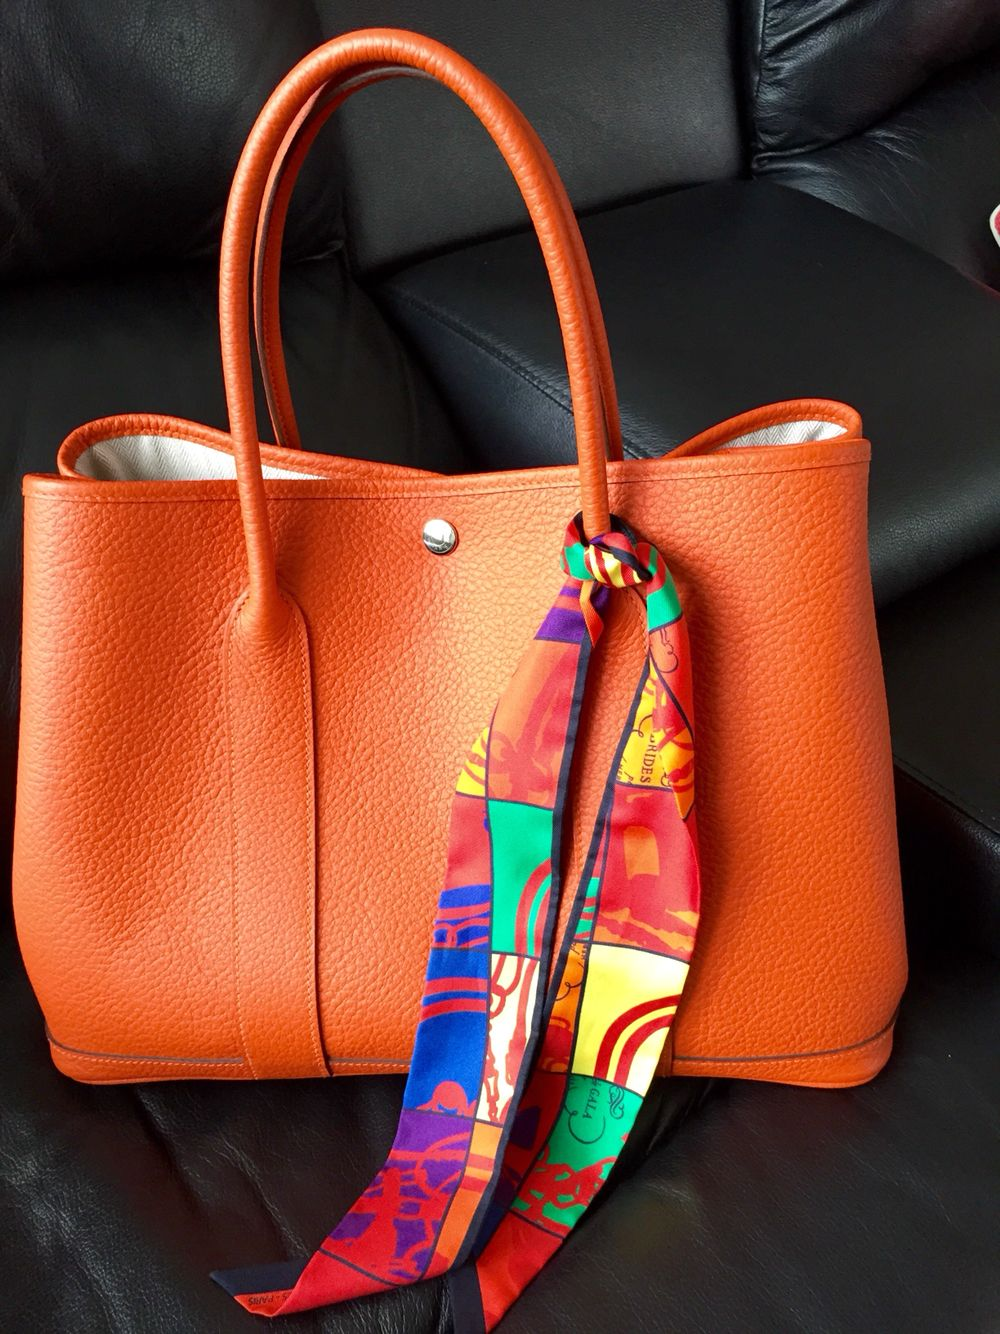 Garden Party Hermes Bag With Mini T